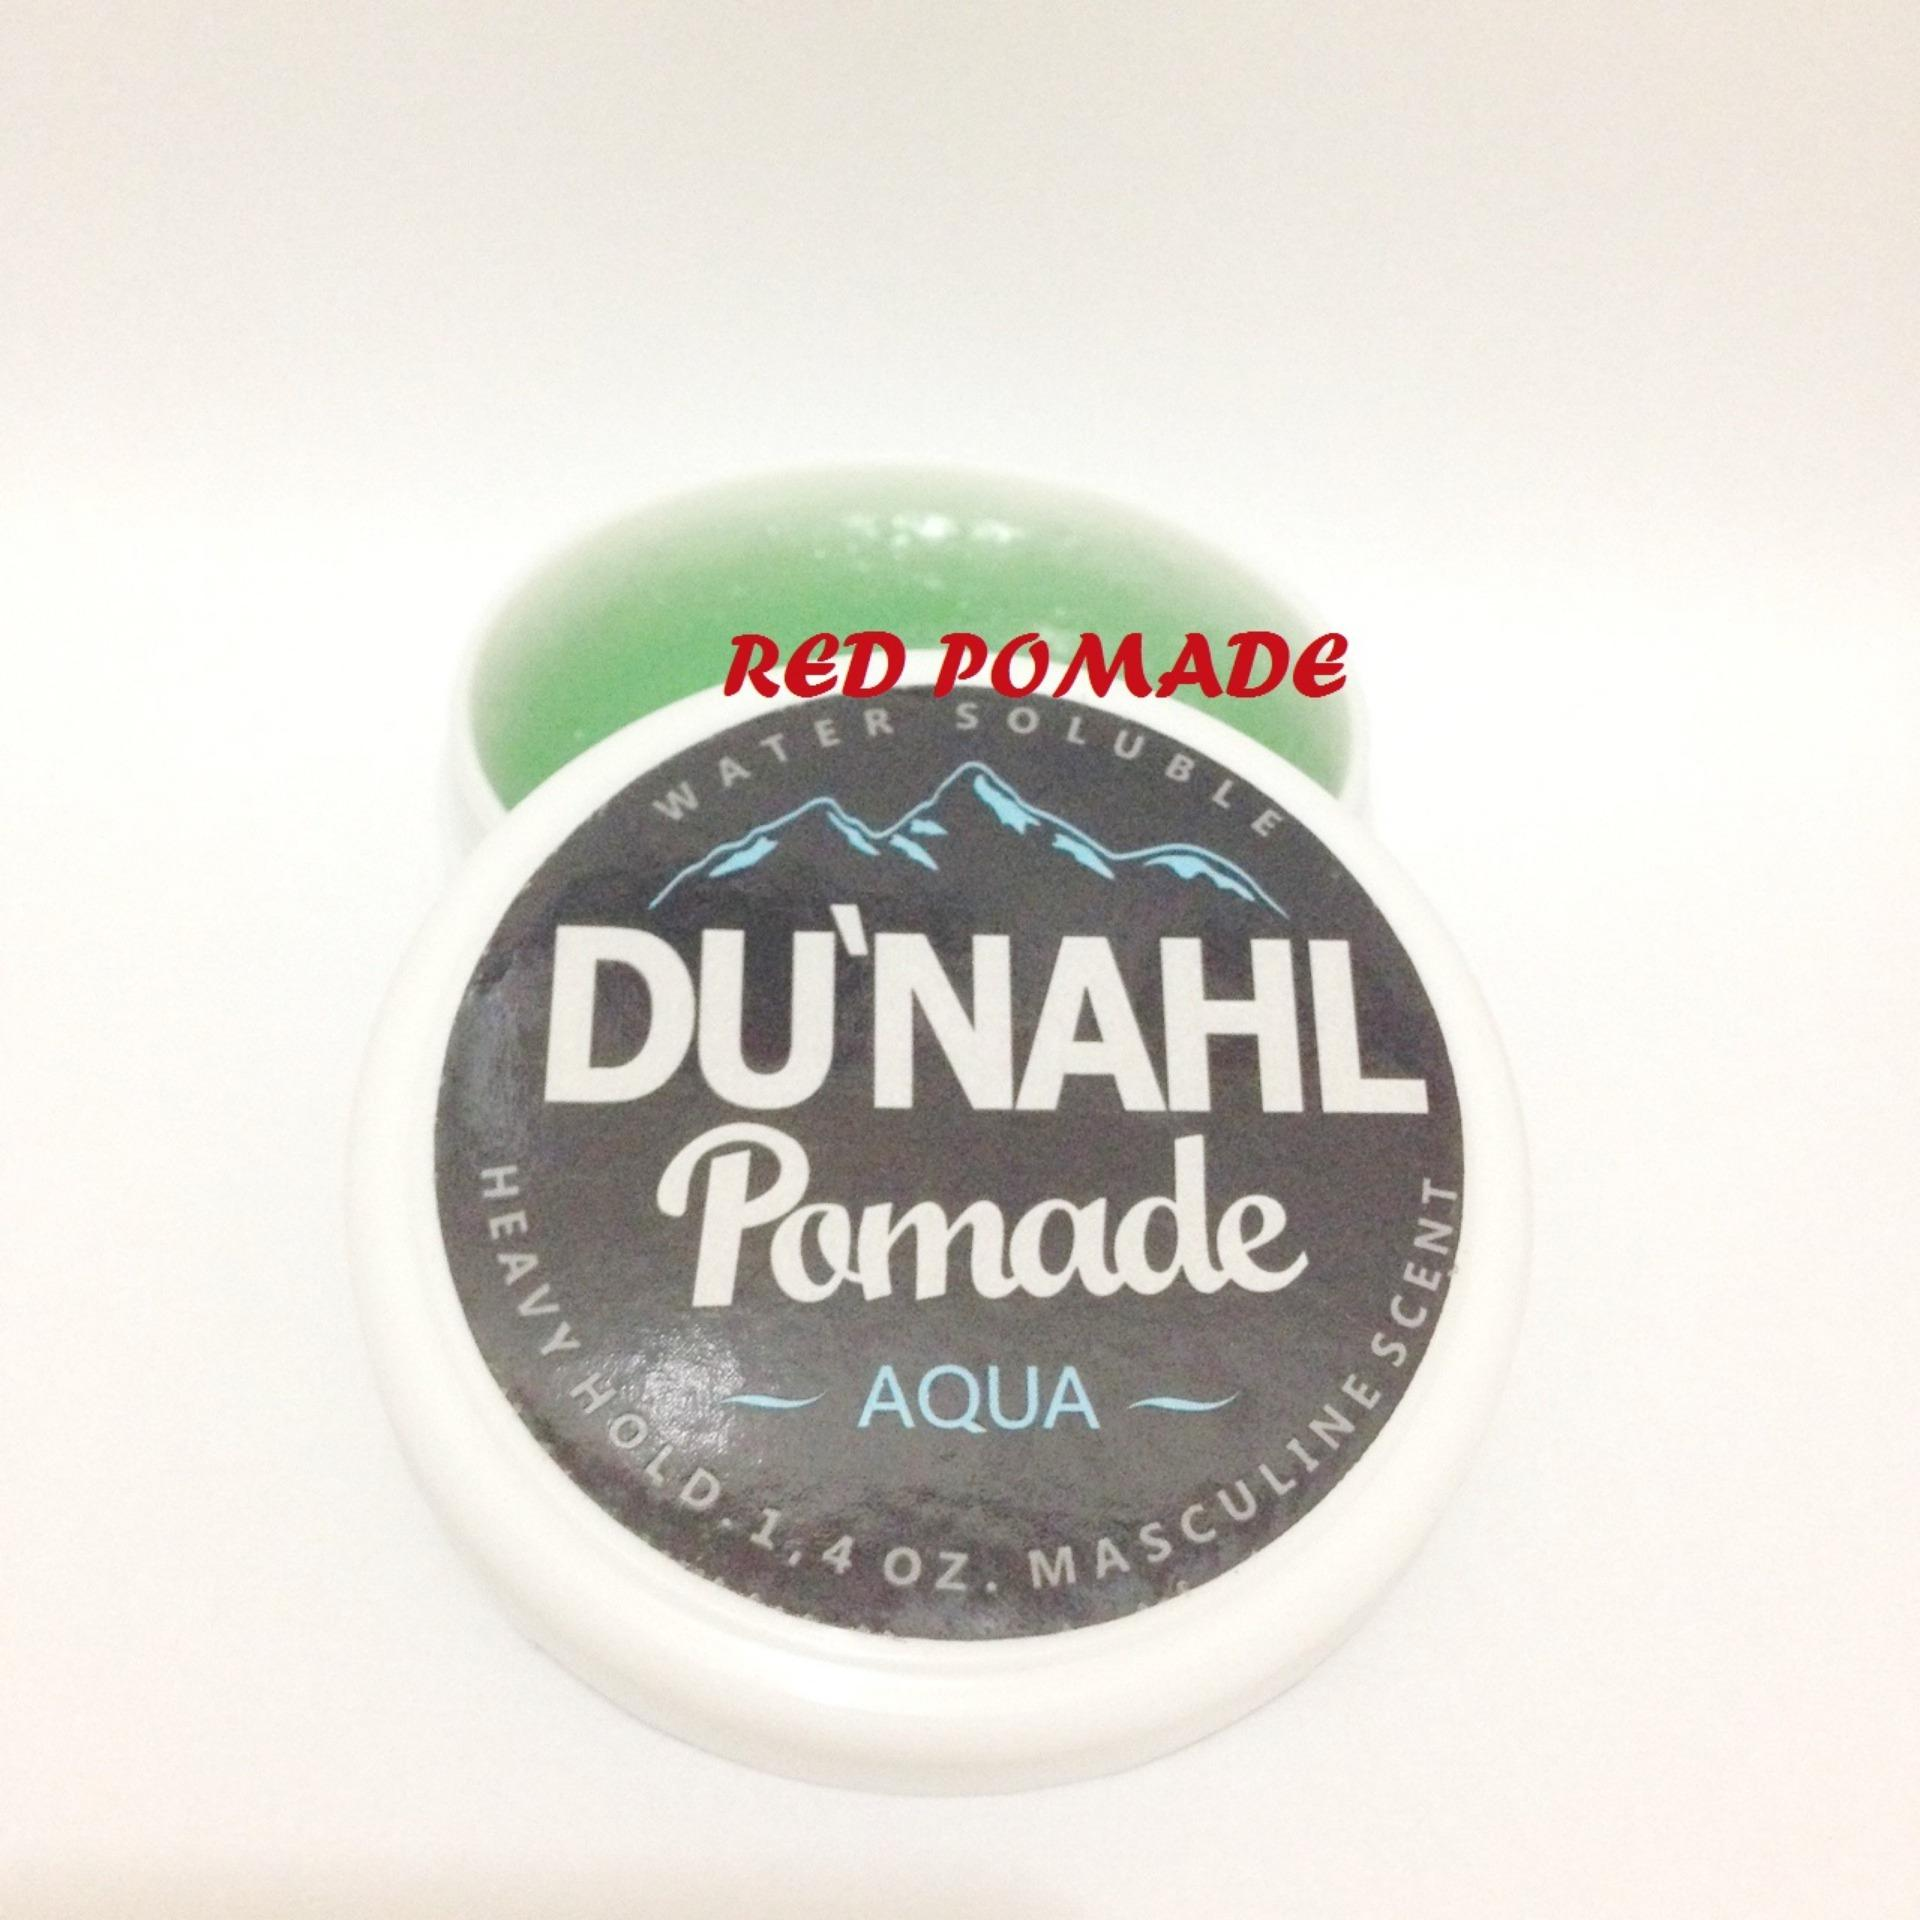 TERMURAH..! POMADE DUNAHL DU'NAHL MINI AQUA 1.4 OZ HEAVY HOLD WATERBASED WATER BASED TRAVEL SIZE + FREE SISIR SAKU Terbagus